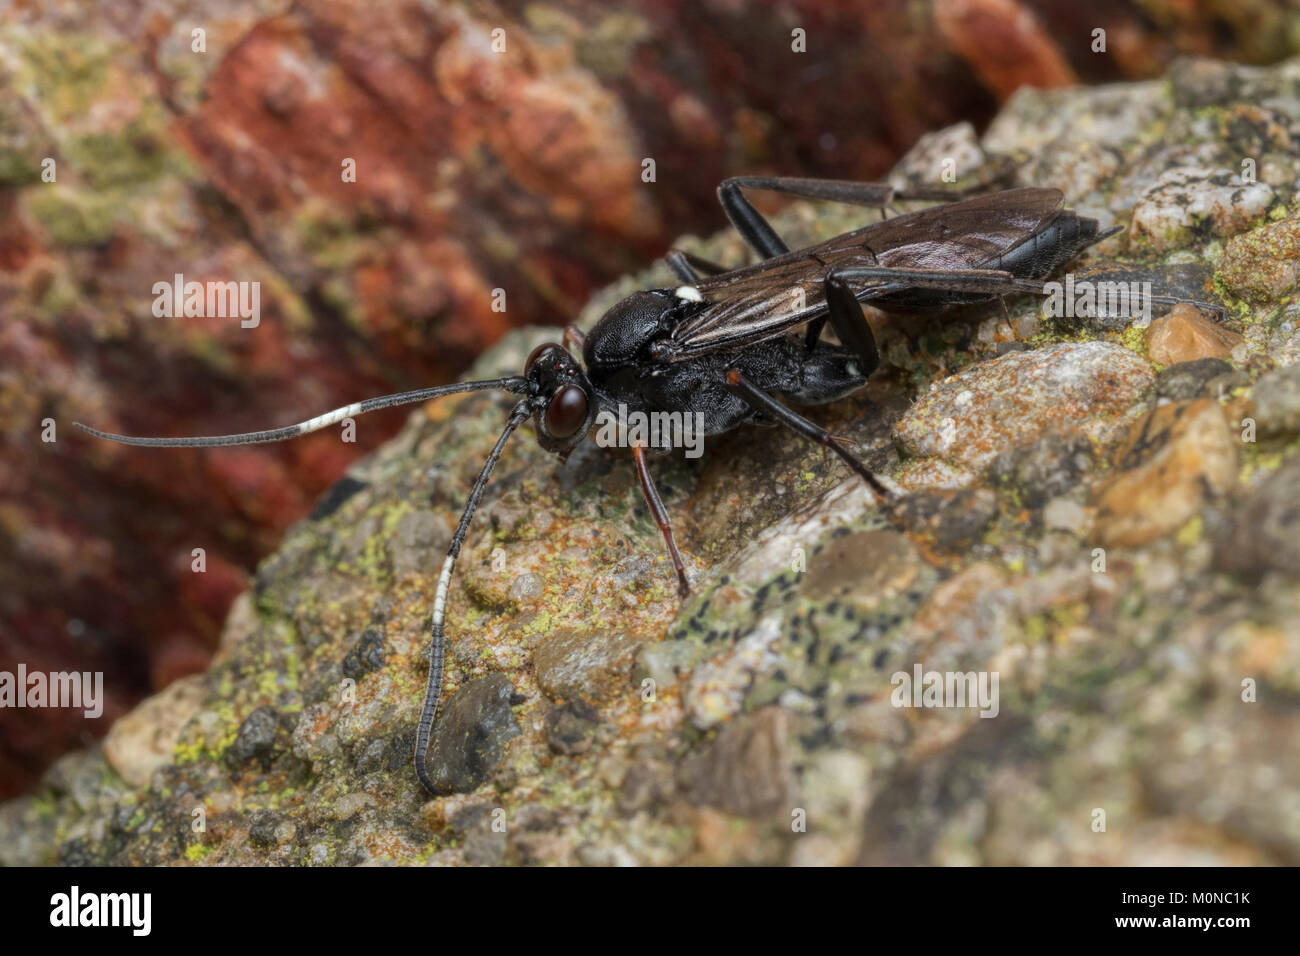 Ichneumonid Wasp on a brief walkabout from its hibernation spot inside the bark of a fencepost. Tipperary, Ireland. - Stock Image